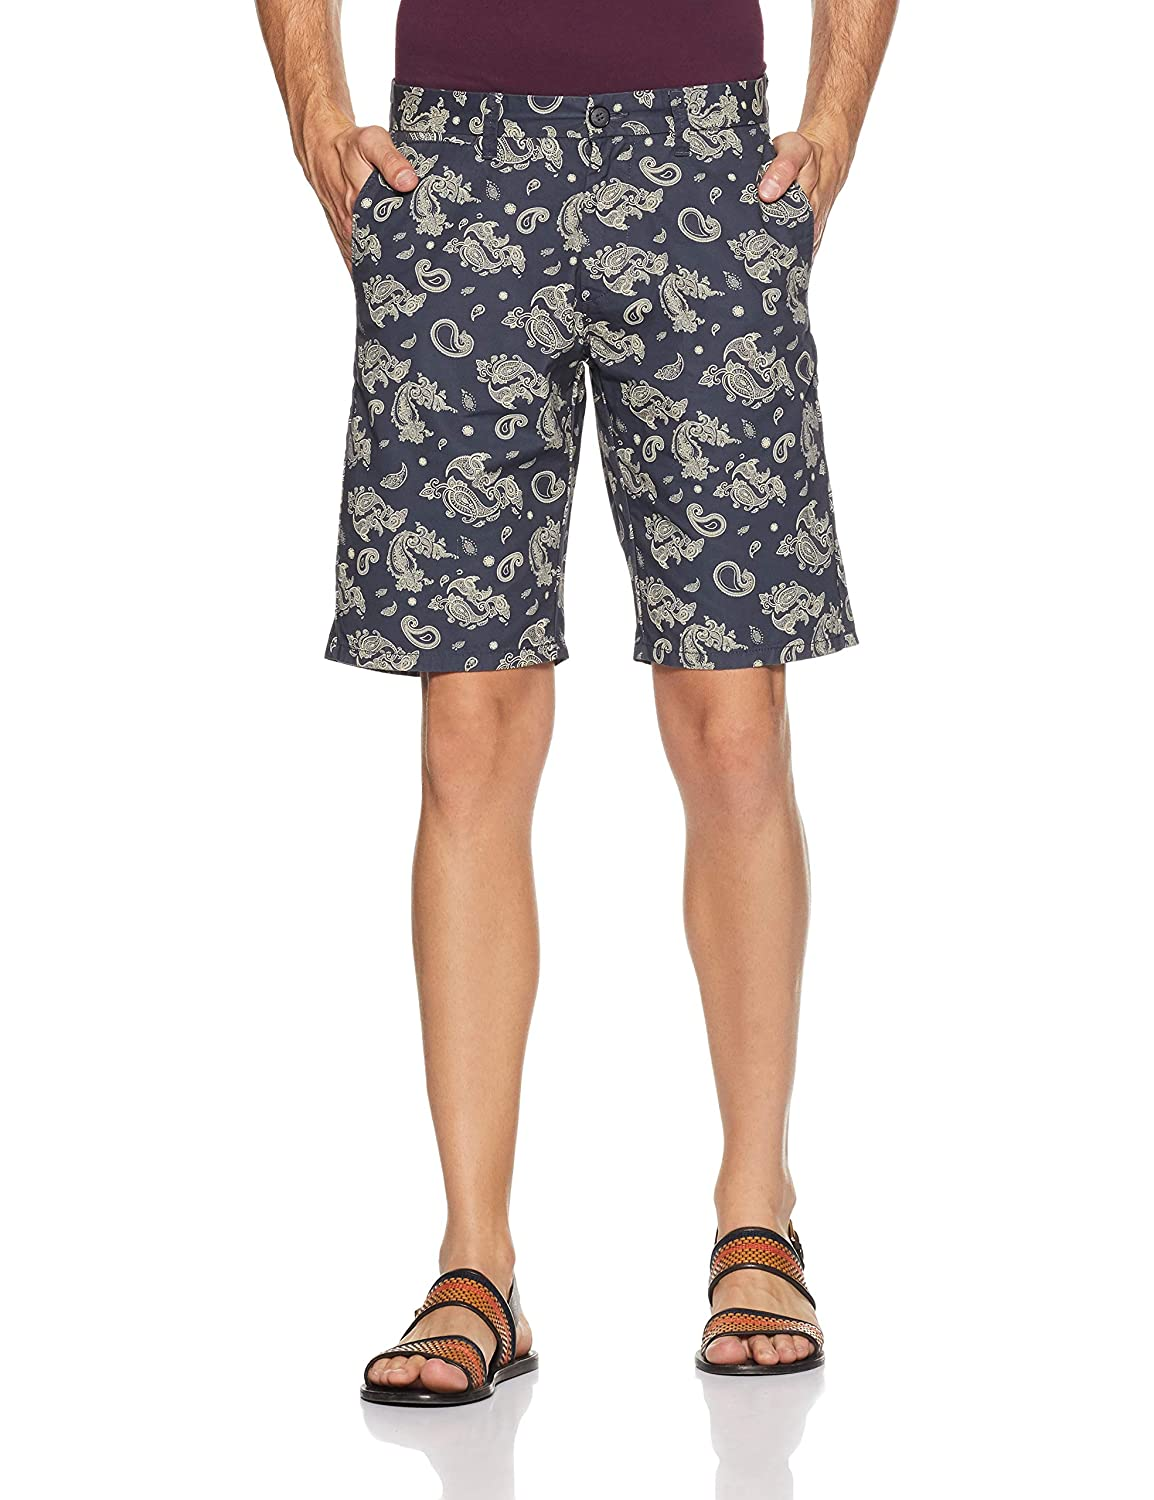 US Polo Association Men's Cotton Shorts Men's Shorts at amazon